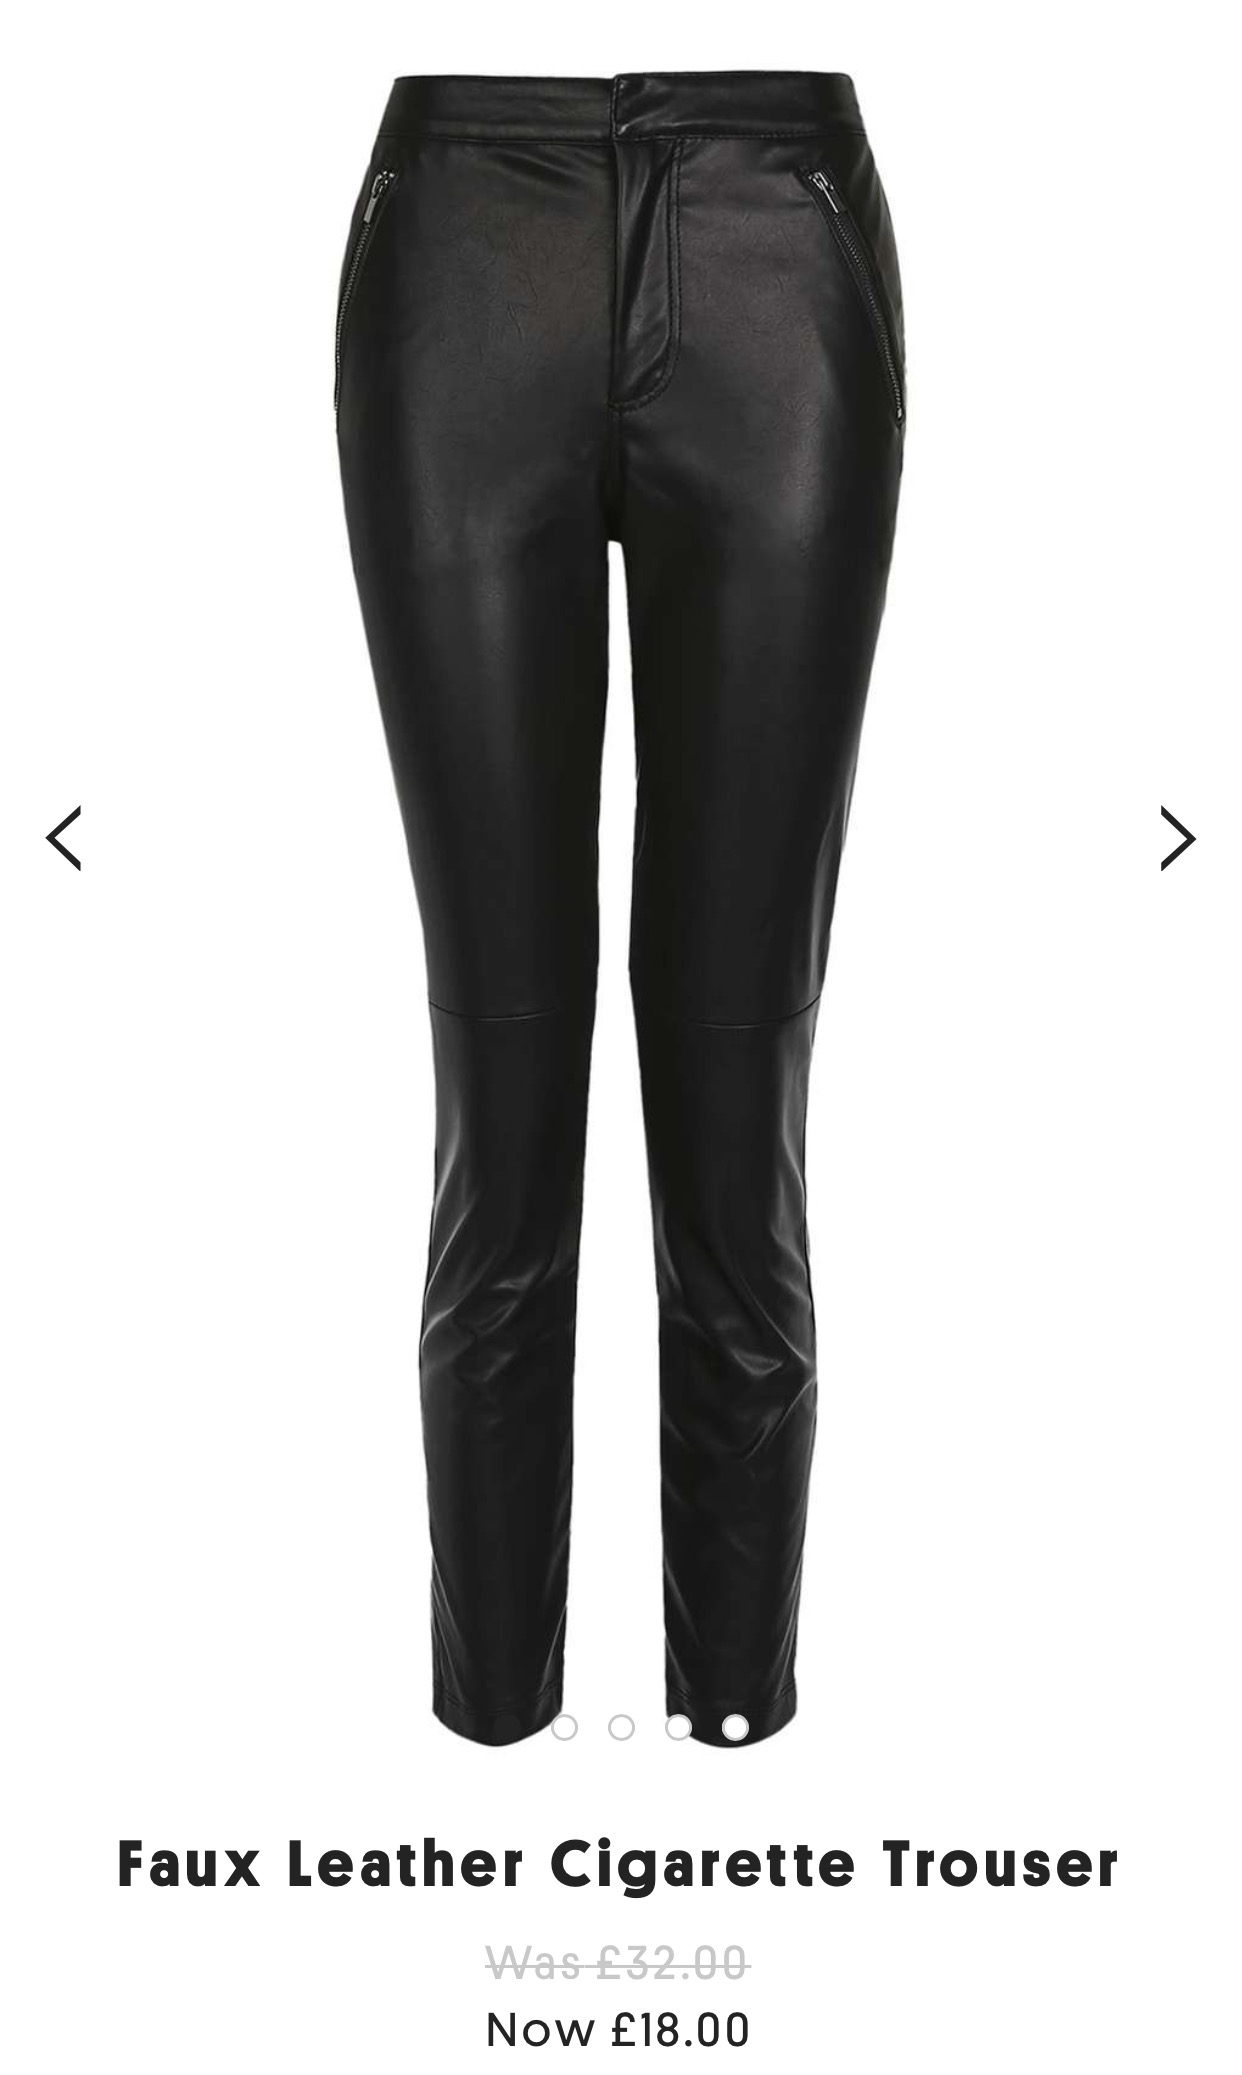 faux leather cigarette leather trousers.jpg